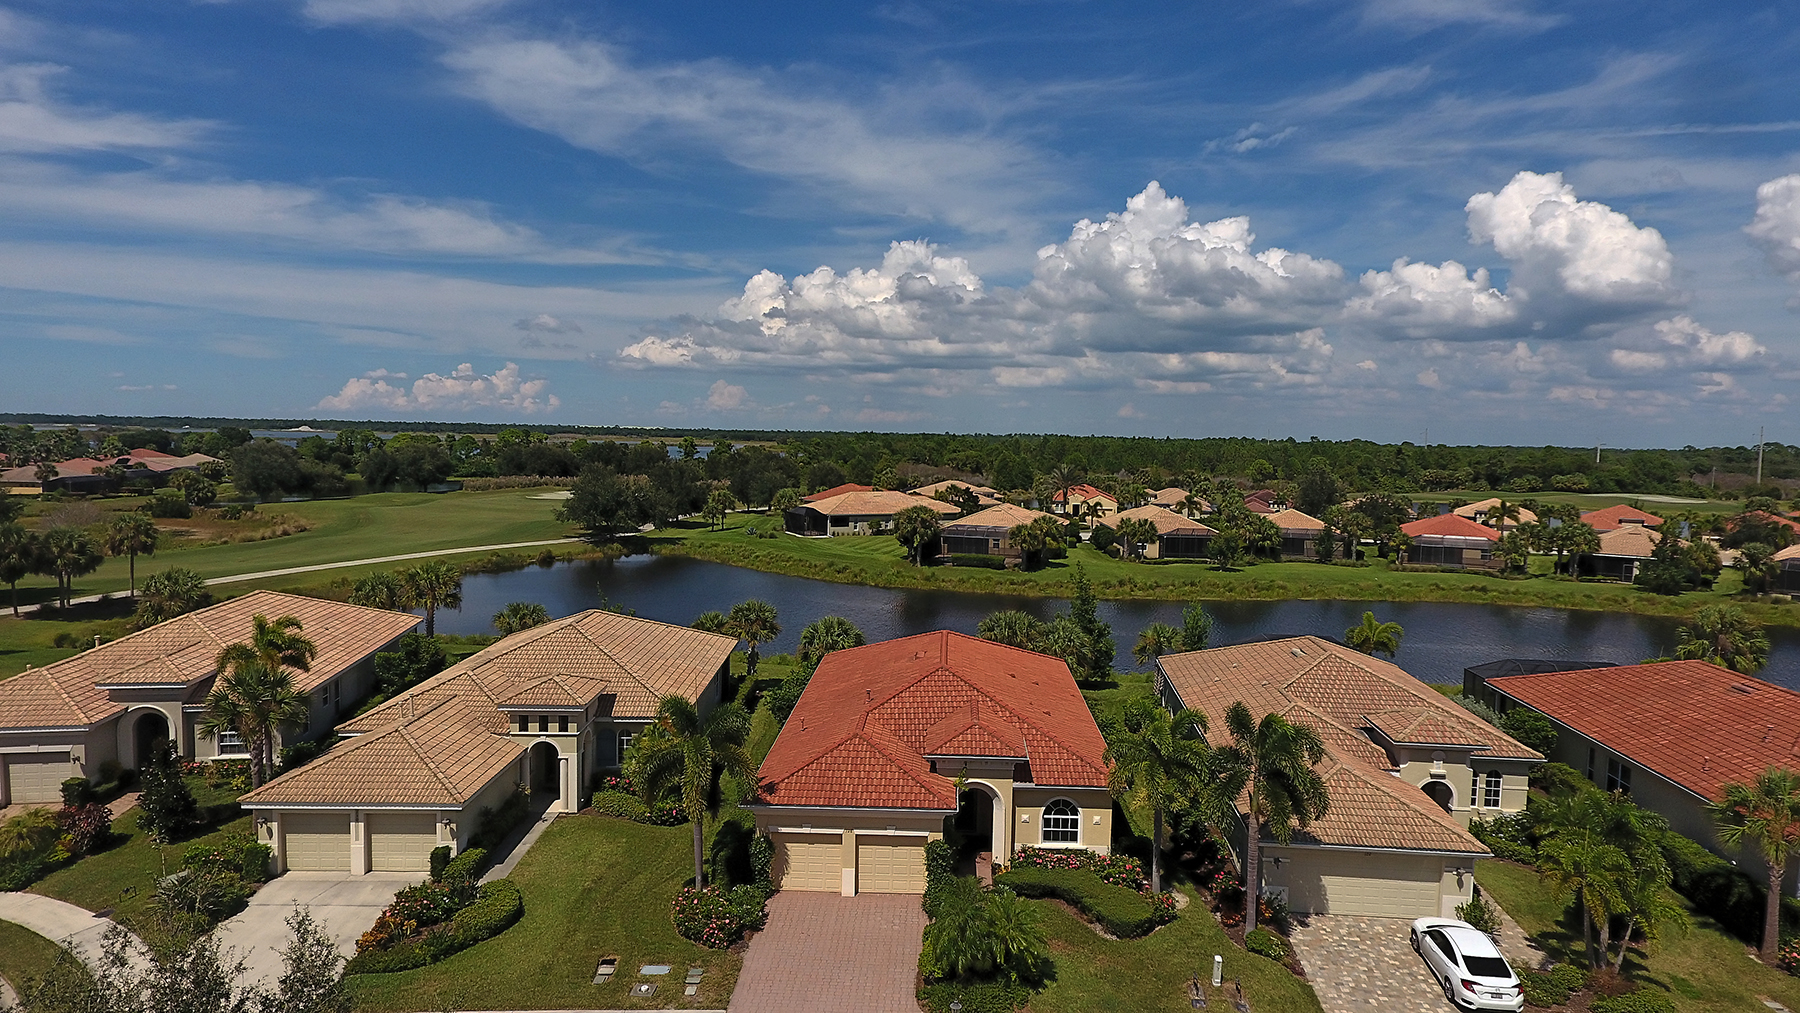 Villa per Vendita alle ore VENETIAN GOLF & RIVER CLUB 126 Bellini Ct North Venice, Florida, 34275 Stati Uniti